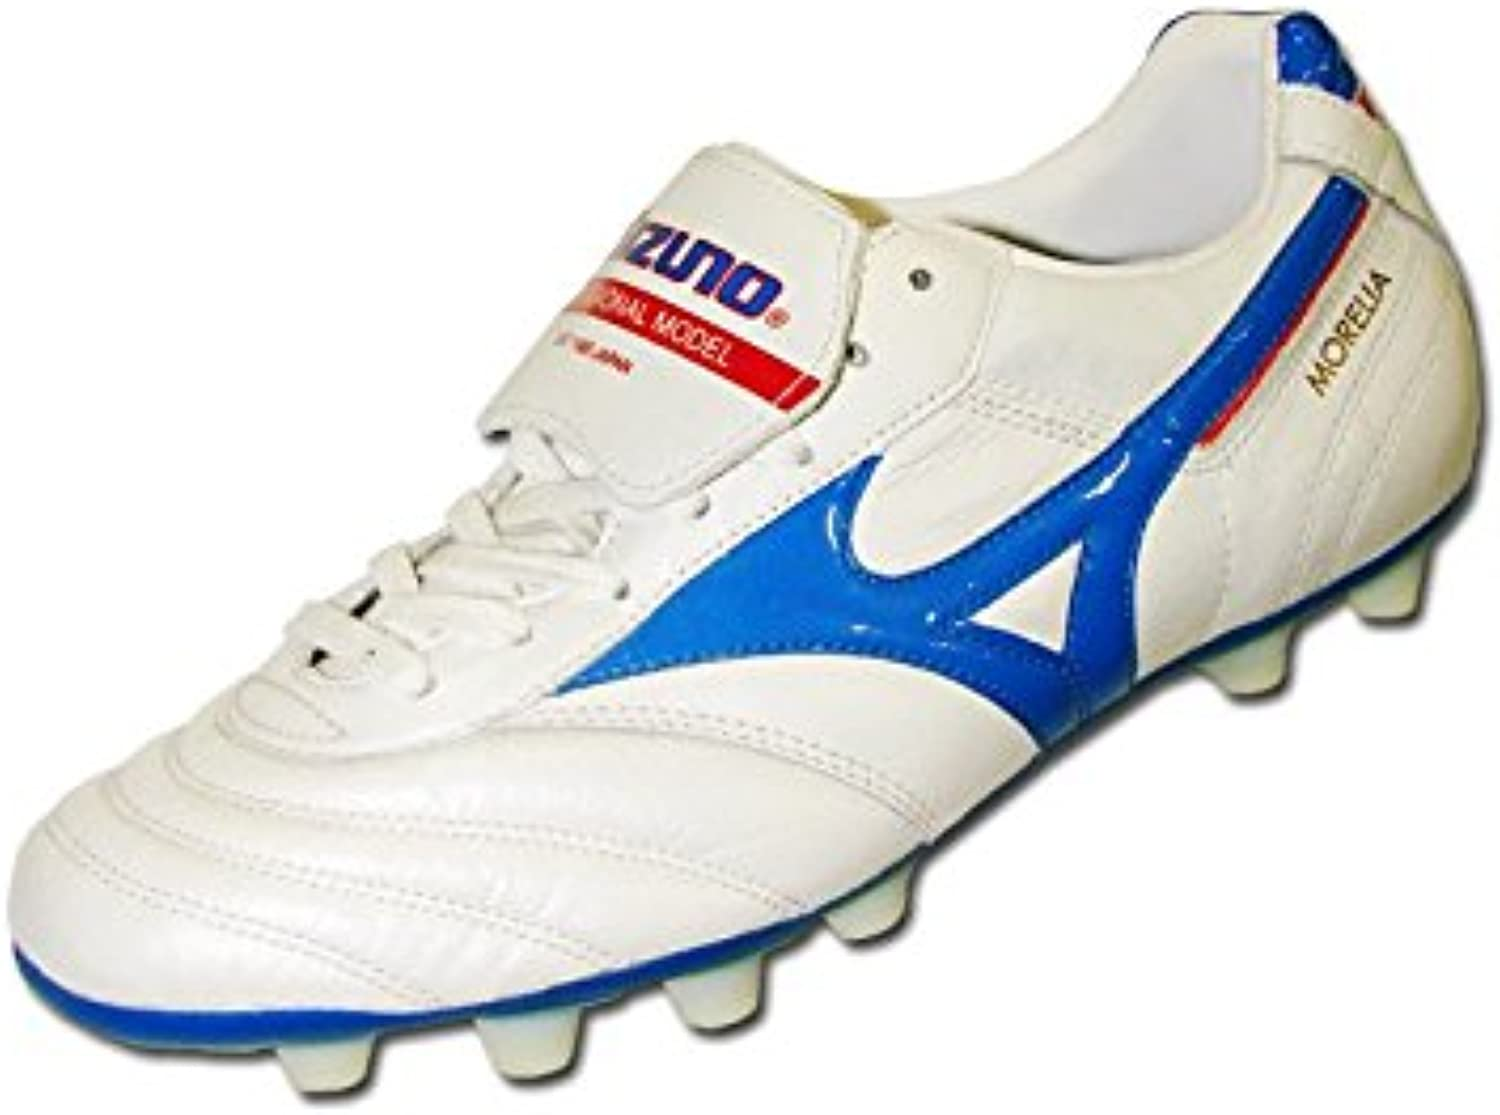 Morelia Moulded FG Football Boots   Pearl White/Blue/Red   size 9